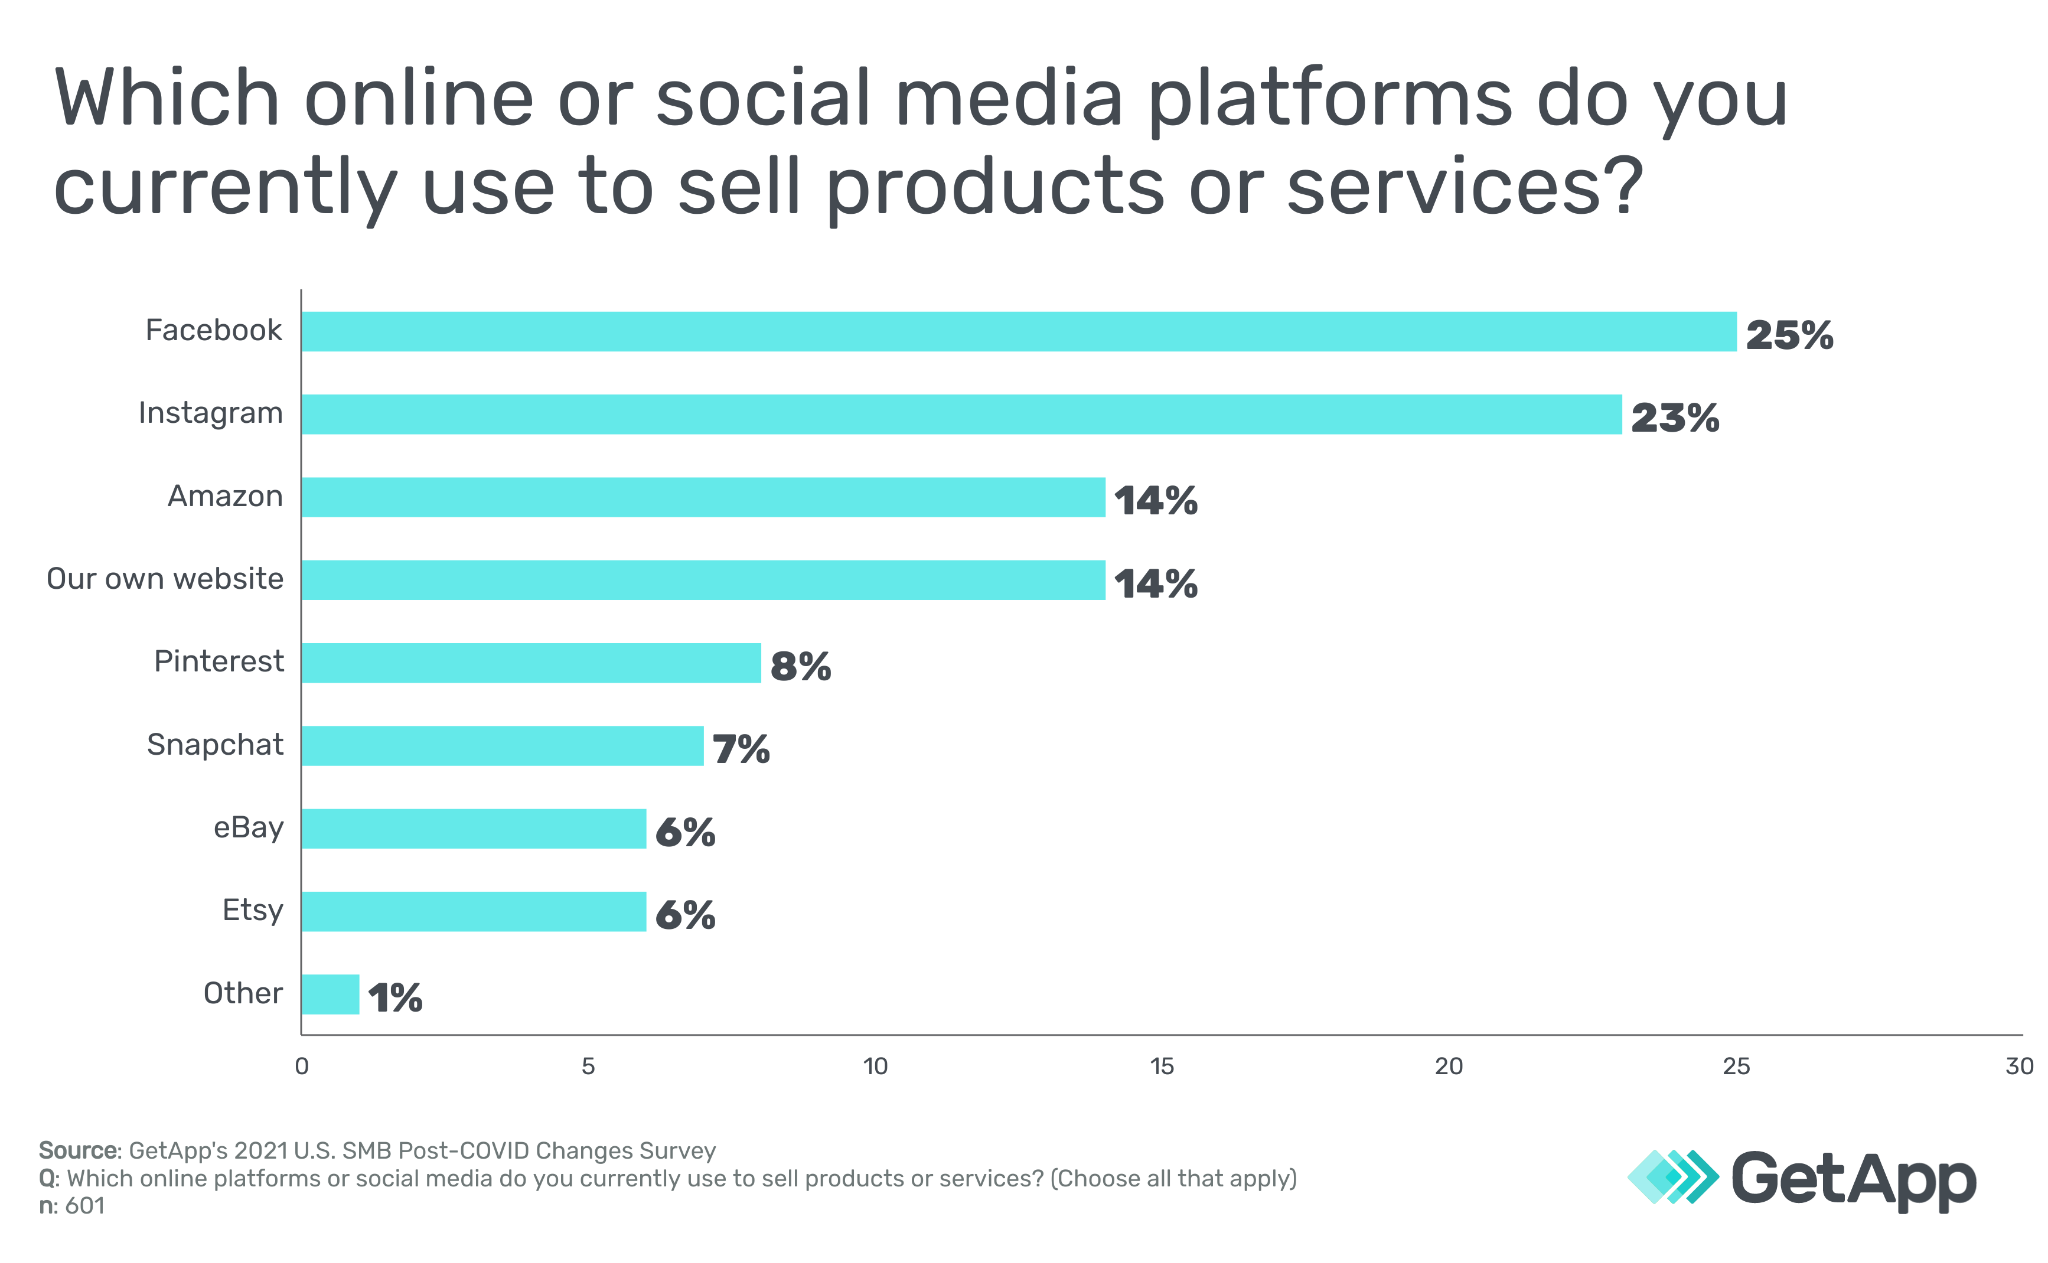 online or social media platforms used for selling products and services